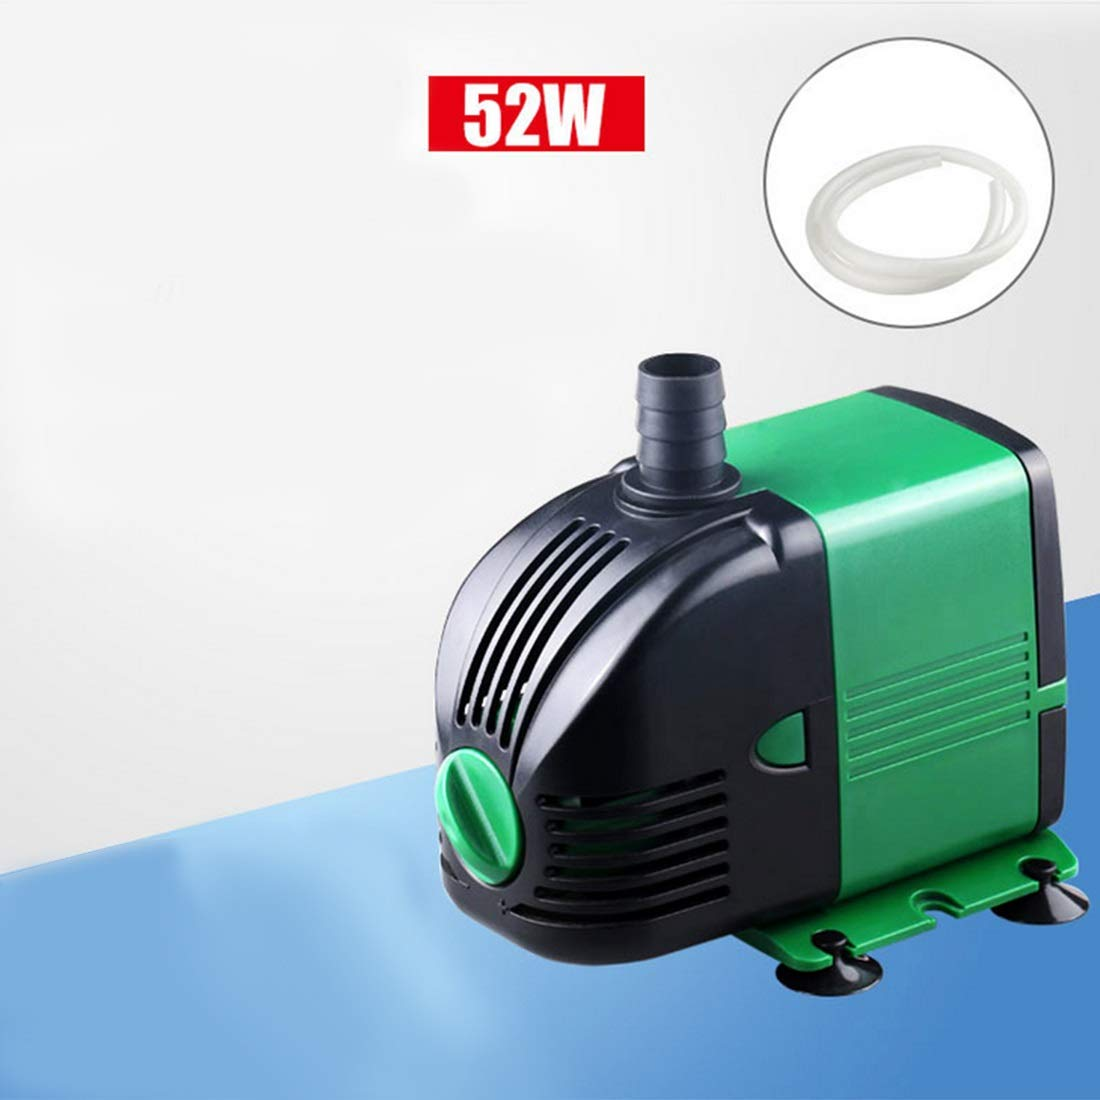 52W FELICIPP Subversible Pump 600L480L /Hr, Fountain Water Pump for Fish Tank, Hydroponics, Aquarium (Wattage: 14W)